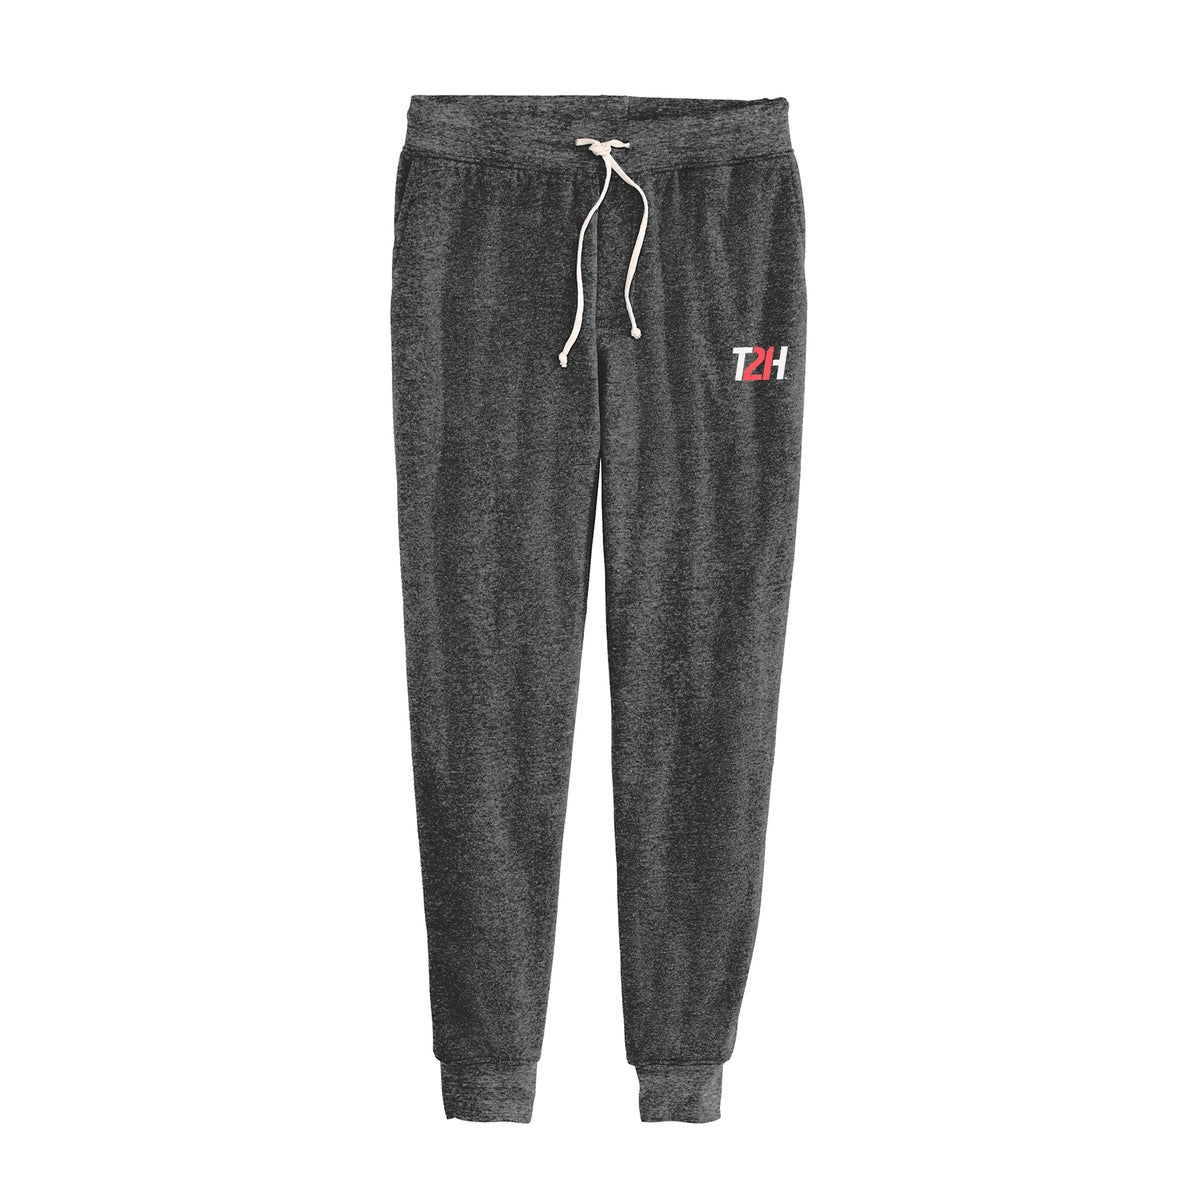 Image of T21H Fleece Pants